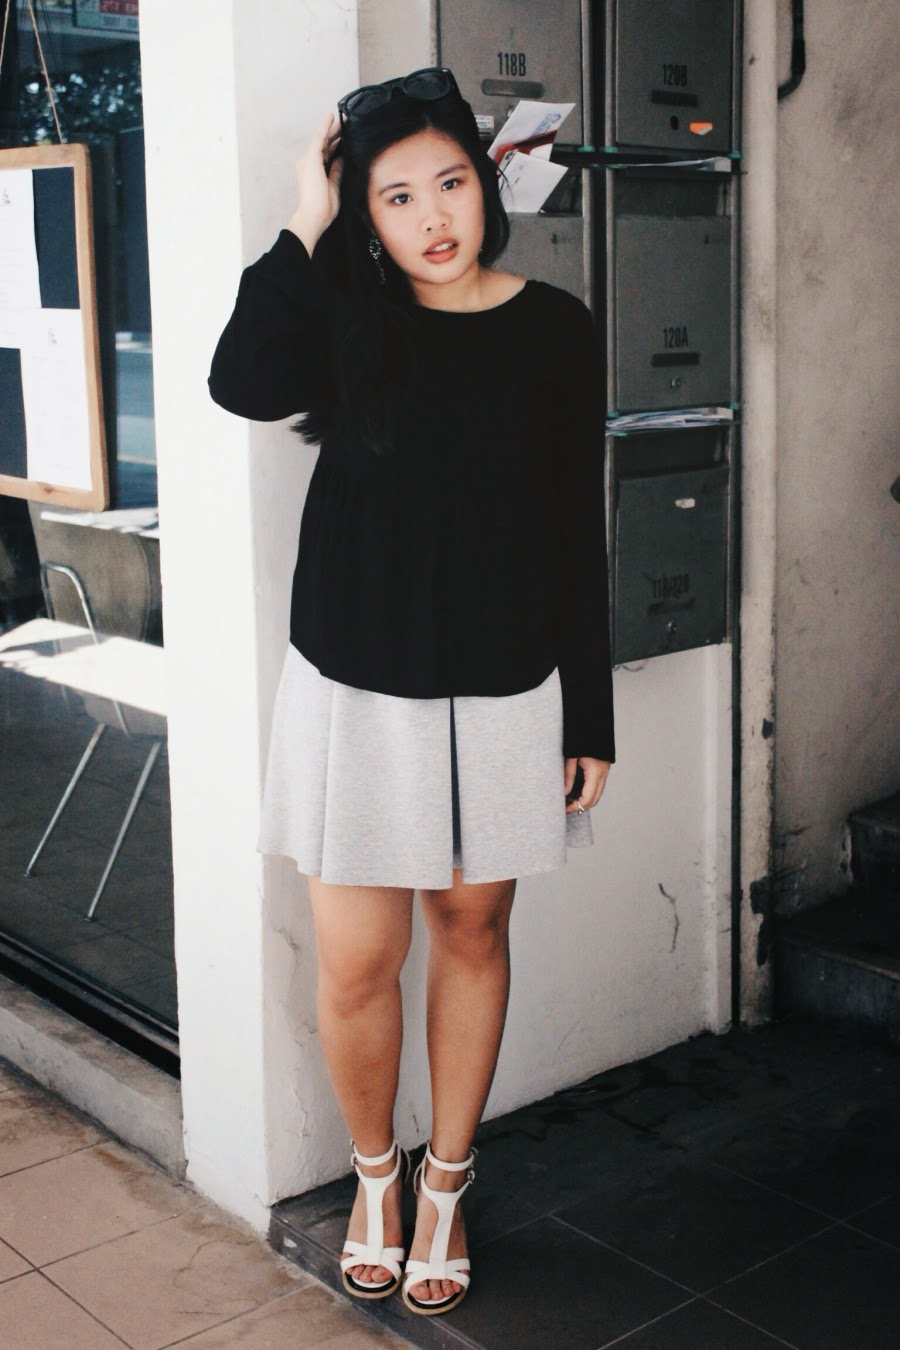 lookbook, ootd, photography, singapore blogger, yours xincerely, ootdsg, wiwtsg, lookbooksg